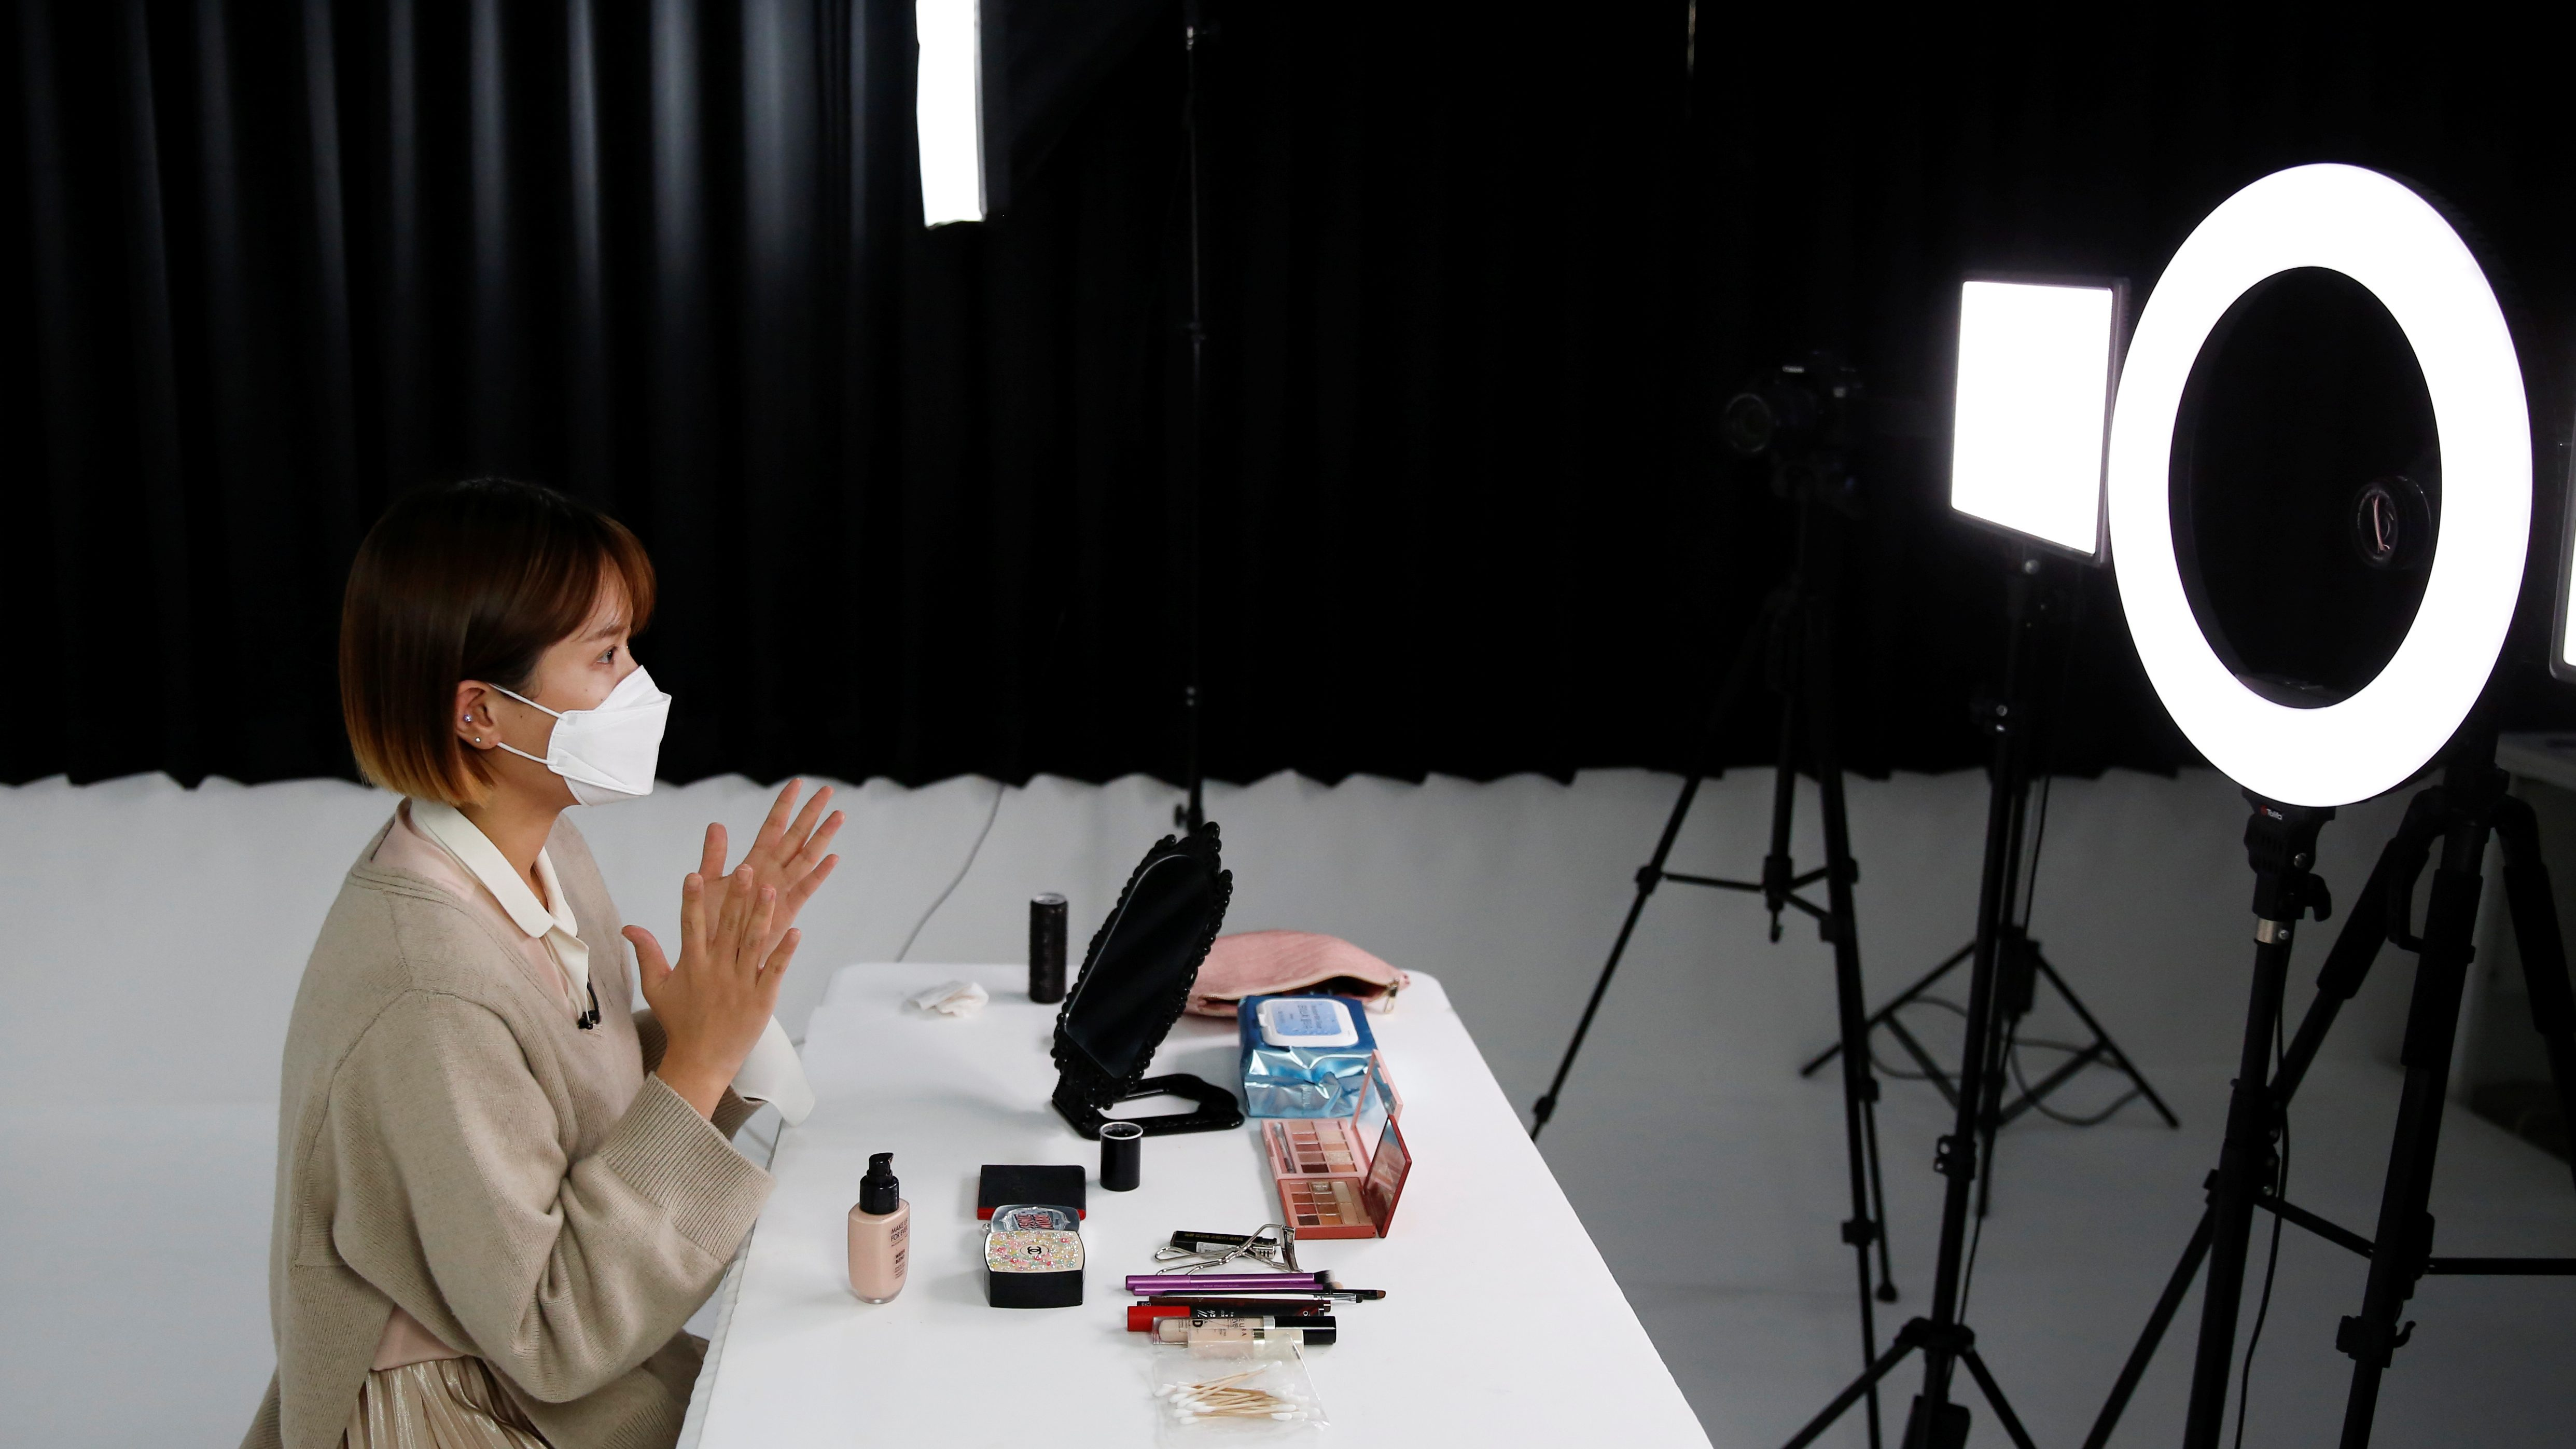 SSUNZY, a beauty content YouTuber, records YouTube video clips on makeup tutorials catered to those wearing masks, following the outbreak of the coronavirus disease (COVID-19), at a studio in Seoul, South Korea, March 17, 2020. Picture taken on March 17, 2020.